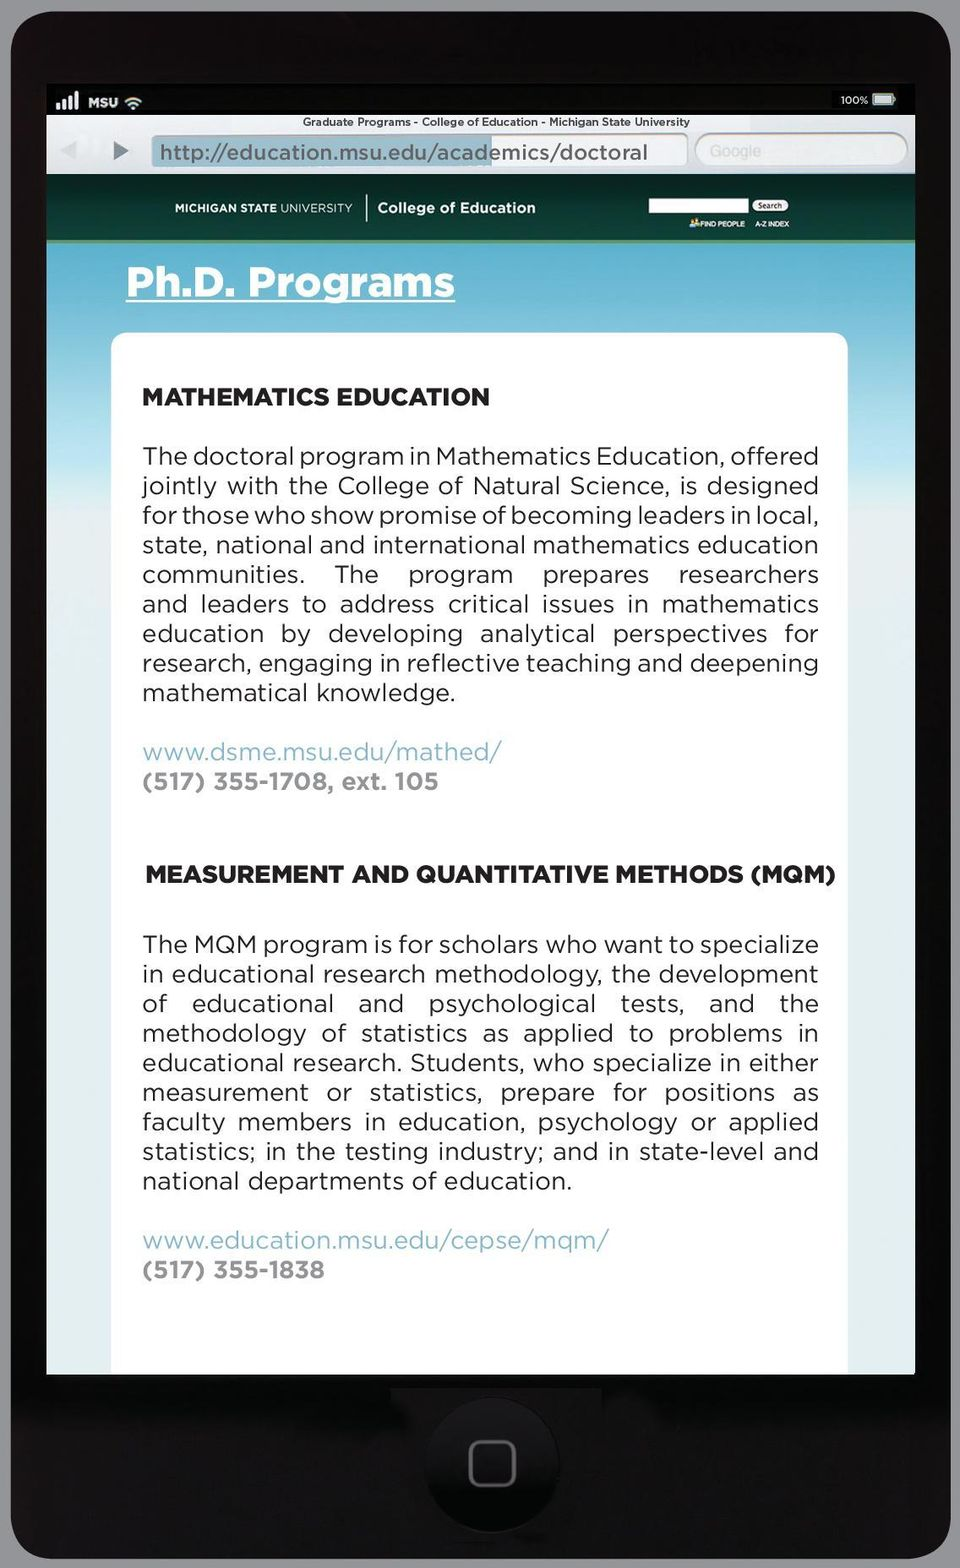 state, national and international mathematics education communities.